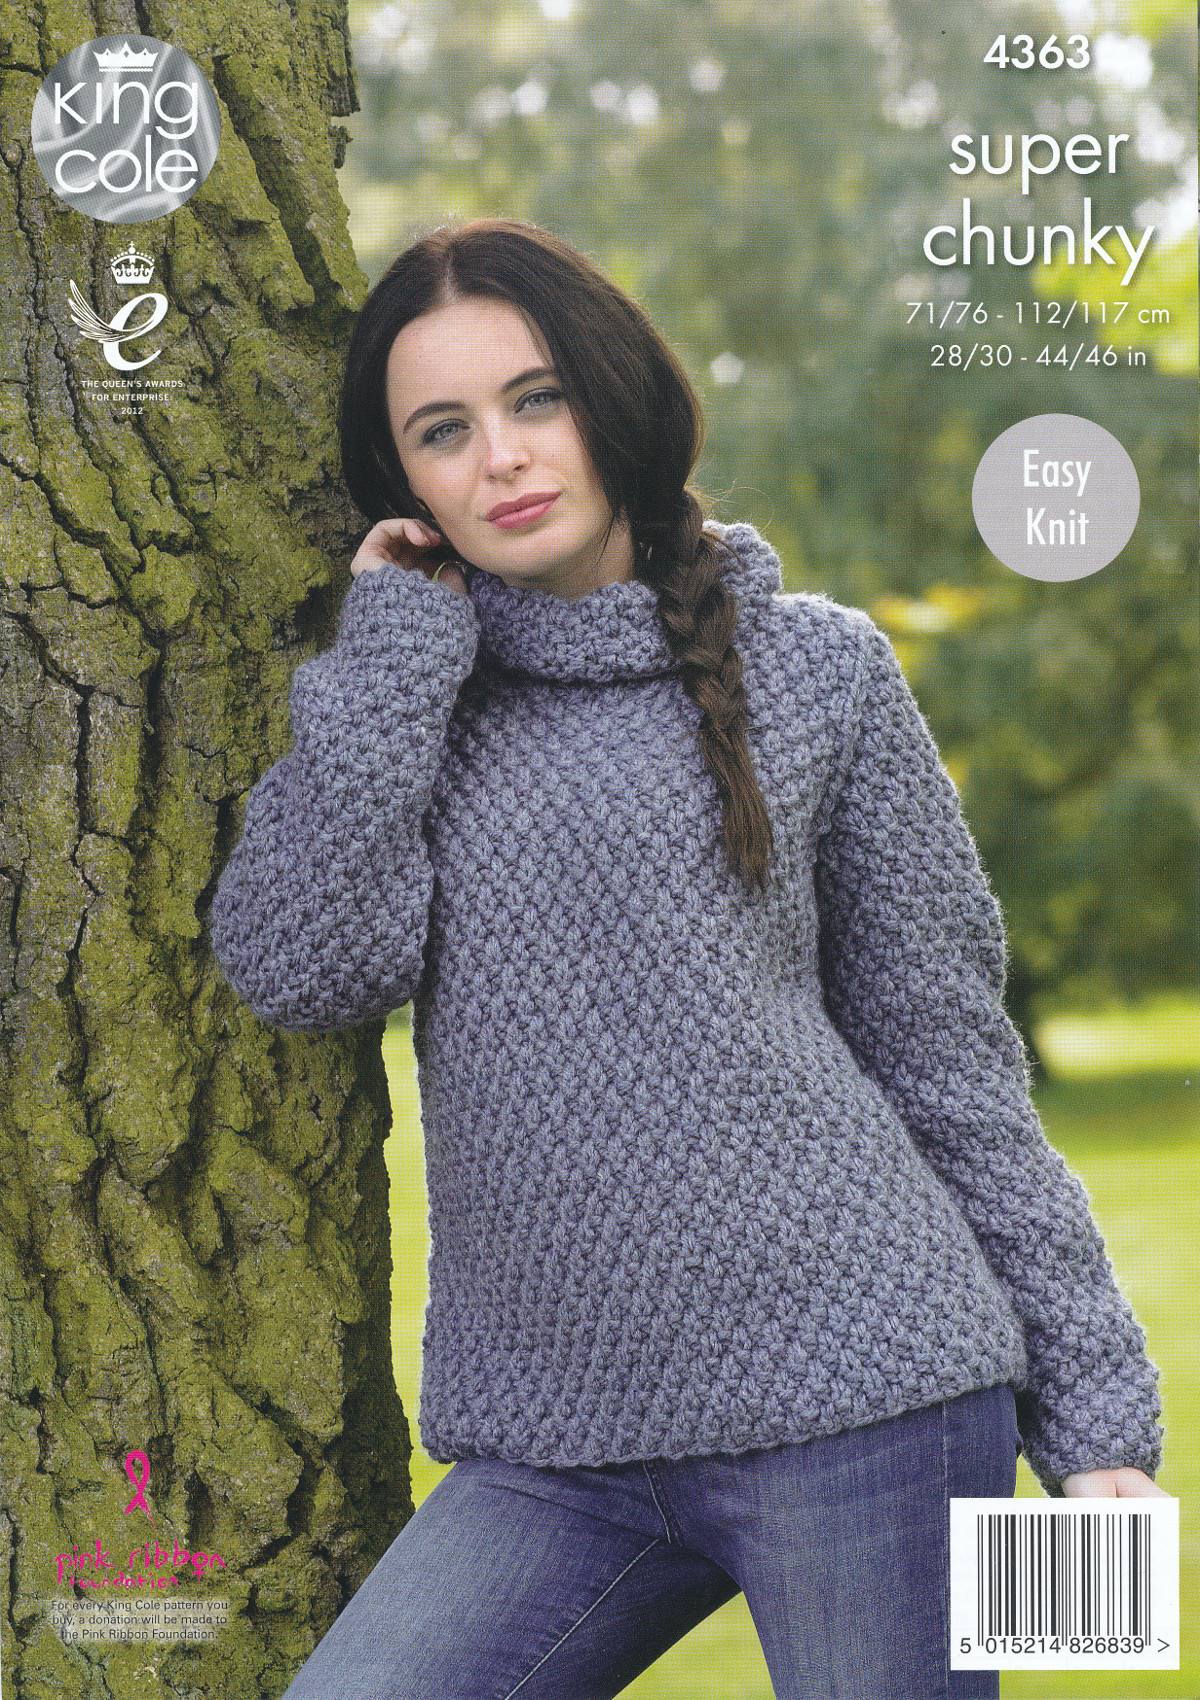 Chunky Knit Jumper Pattern : Ladies Super Chunky Knitting Pattern King Cole Easy Knit Sweater & Jacket...